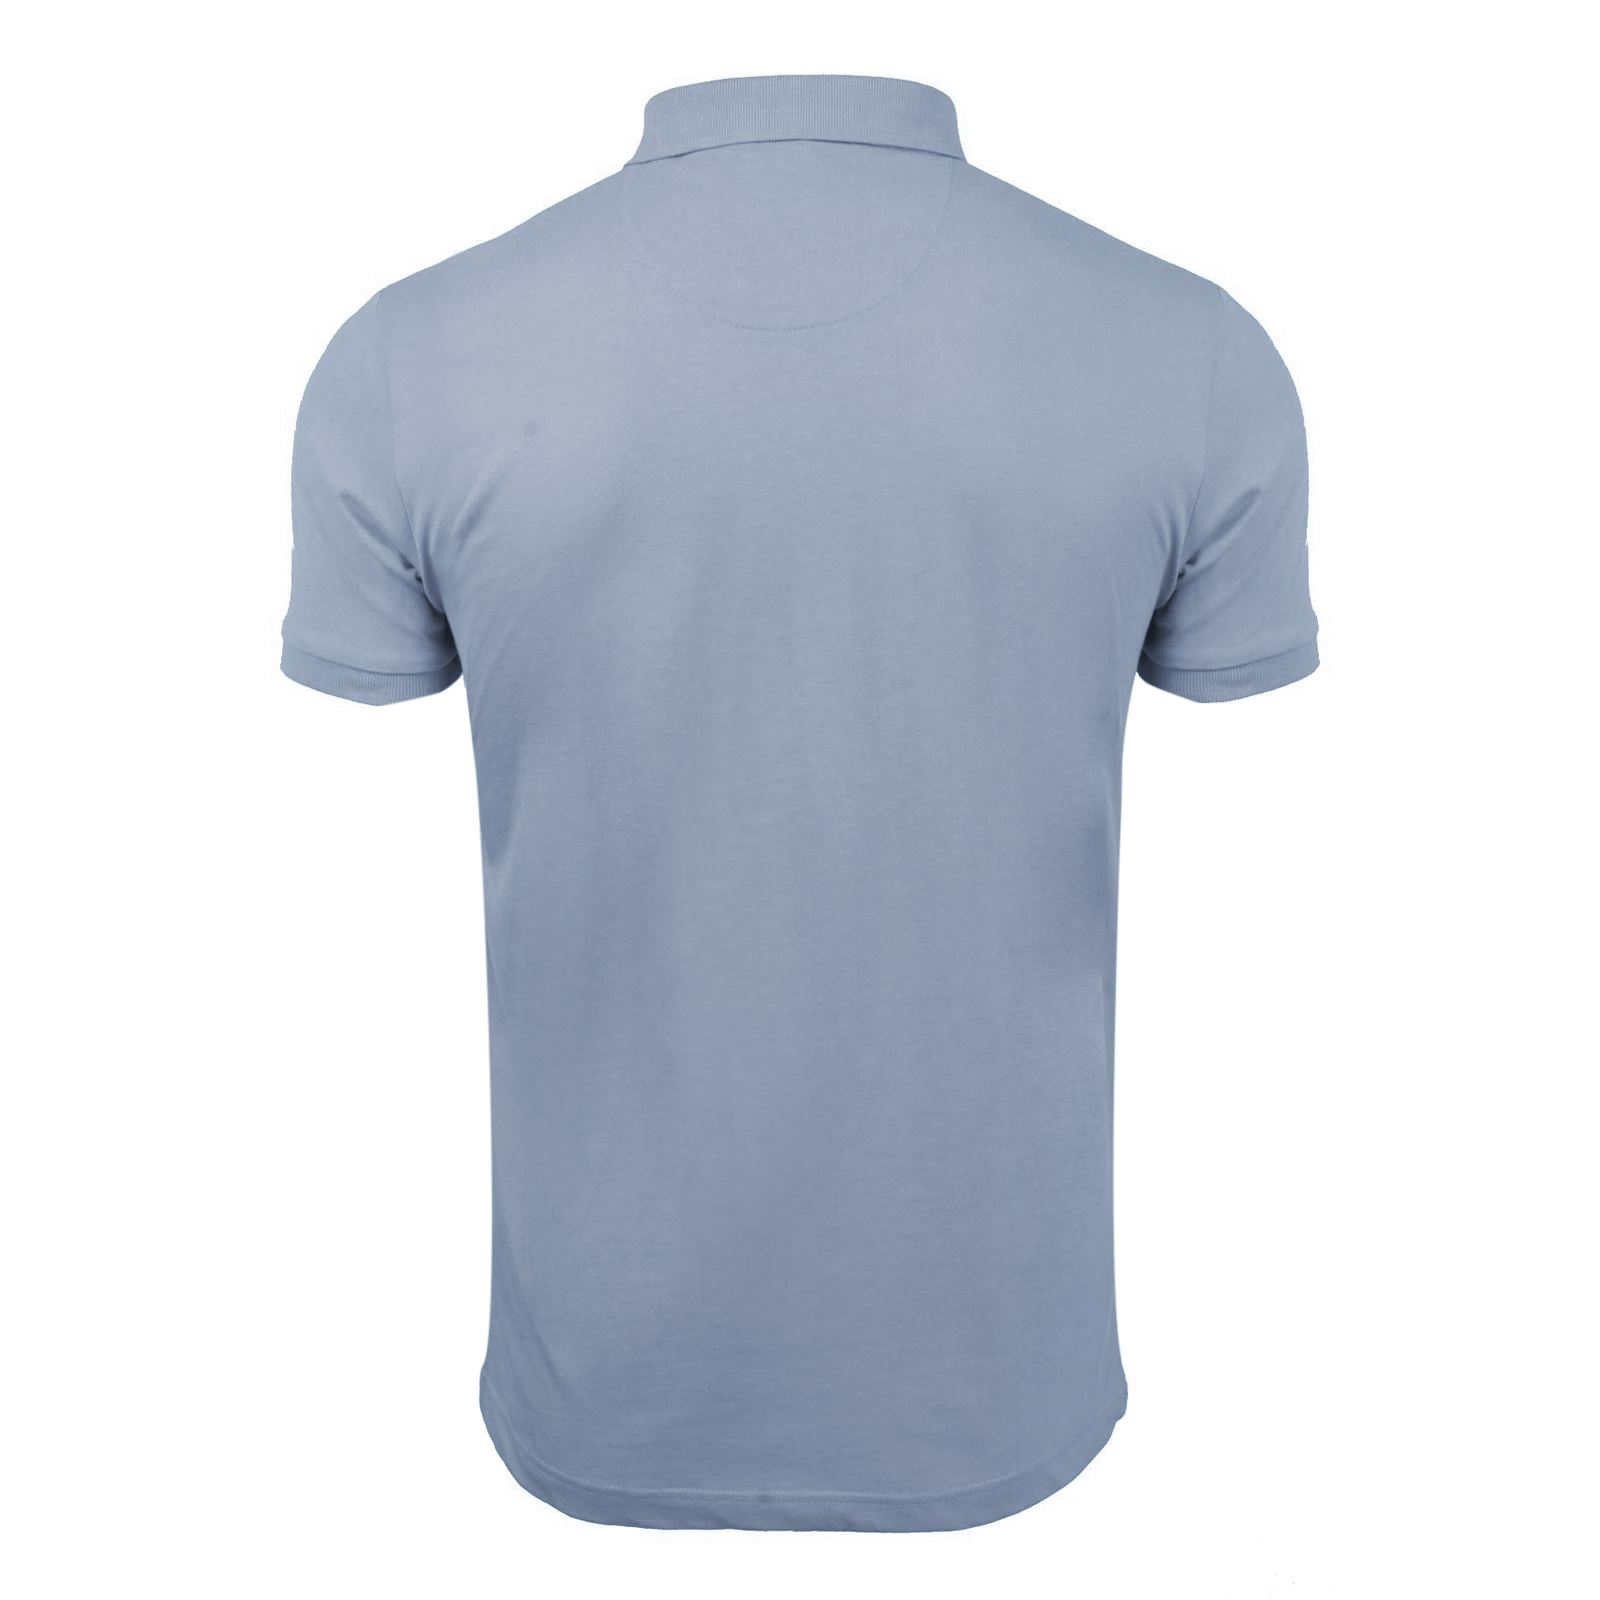 Mens-Polo-T-Shirt-Brave-Soul-Glover-Cotton-Collared-Short-Sleeve-Casual-Top thumbnail 55